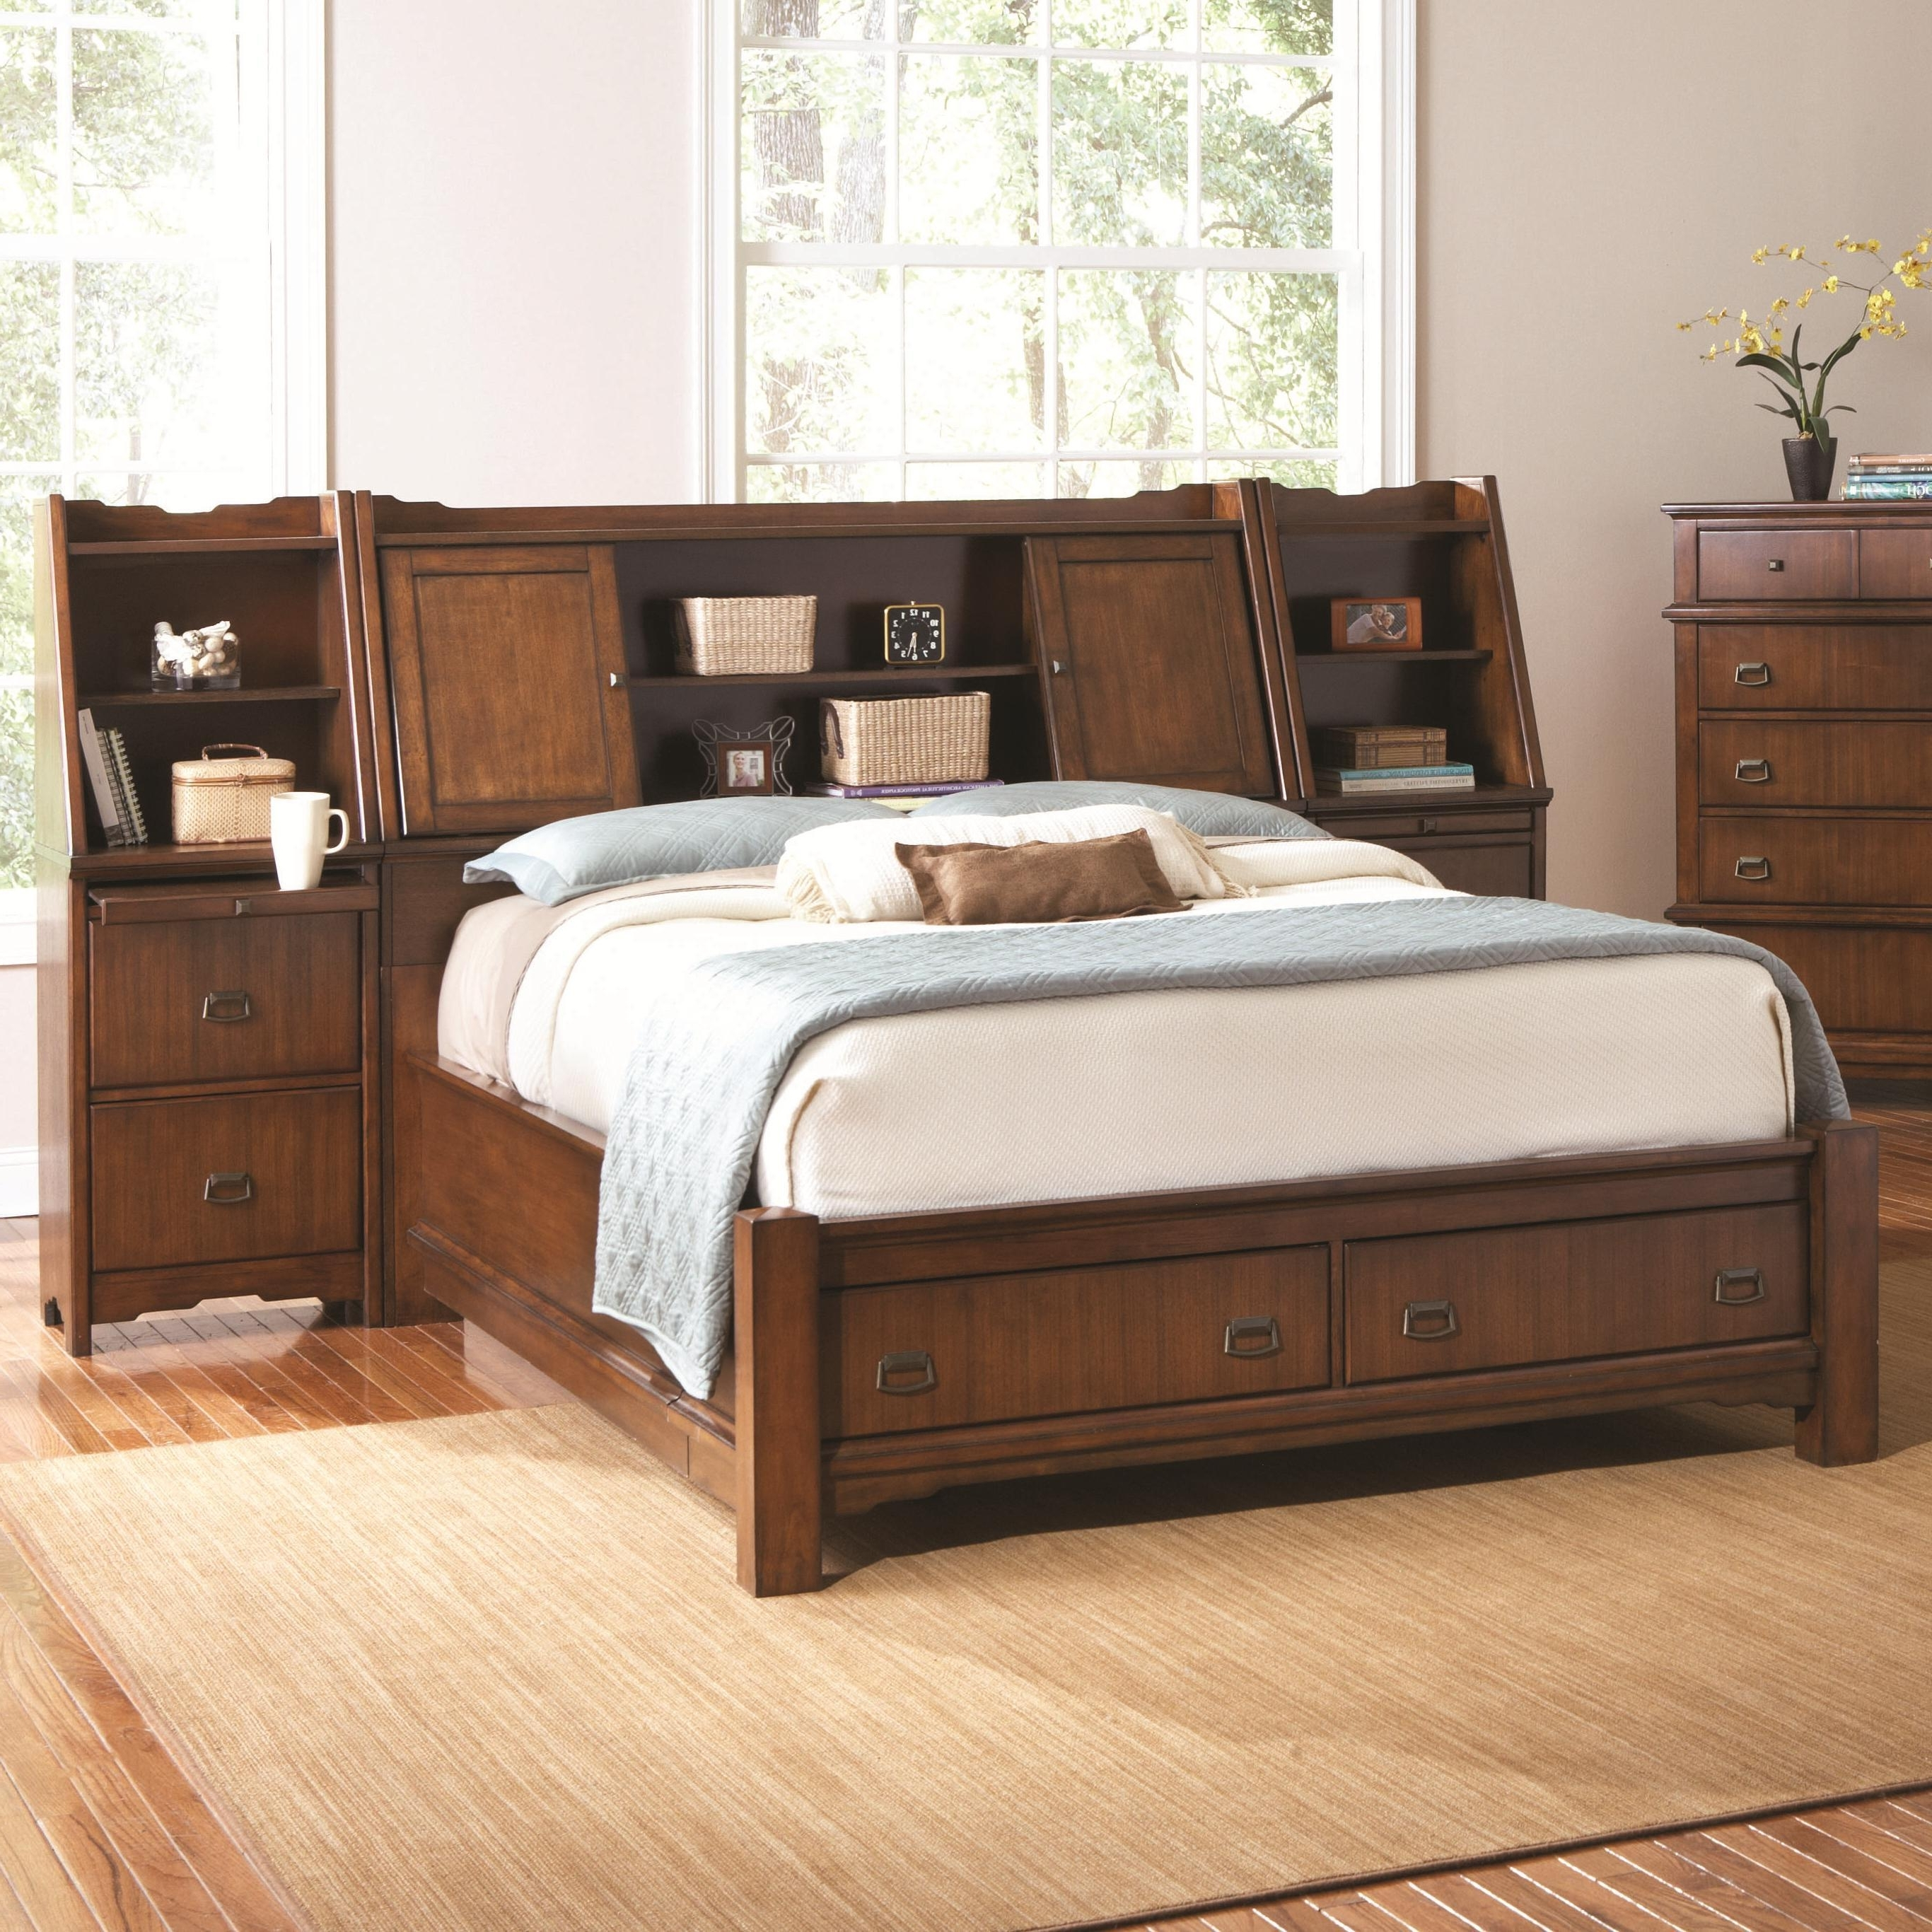 Well Liked Retro Brown Mahogany Wood Queen Bed Frame With Built In Throughout Queen Size Bookcases Headboard (View 5 of 15)